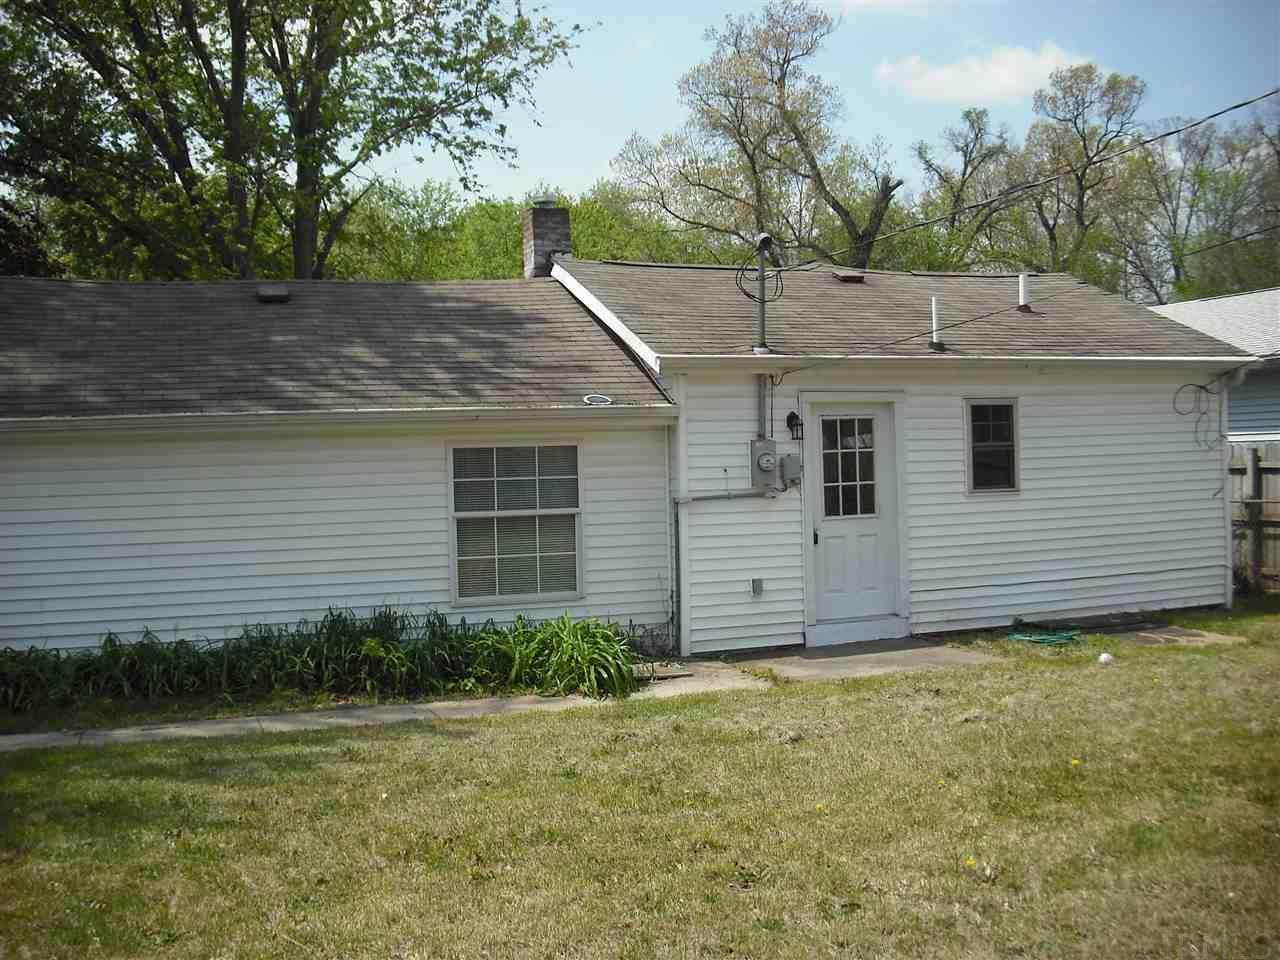 Access Properties South Bend Indiana